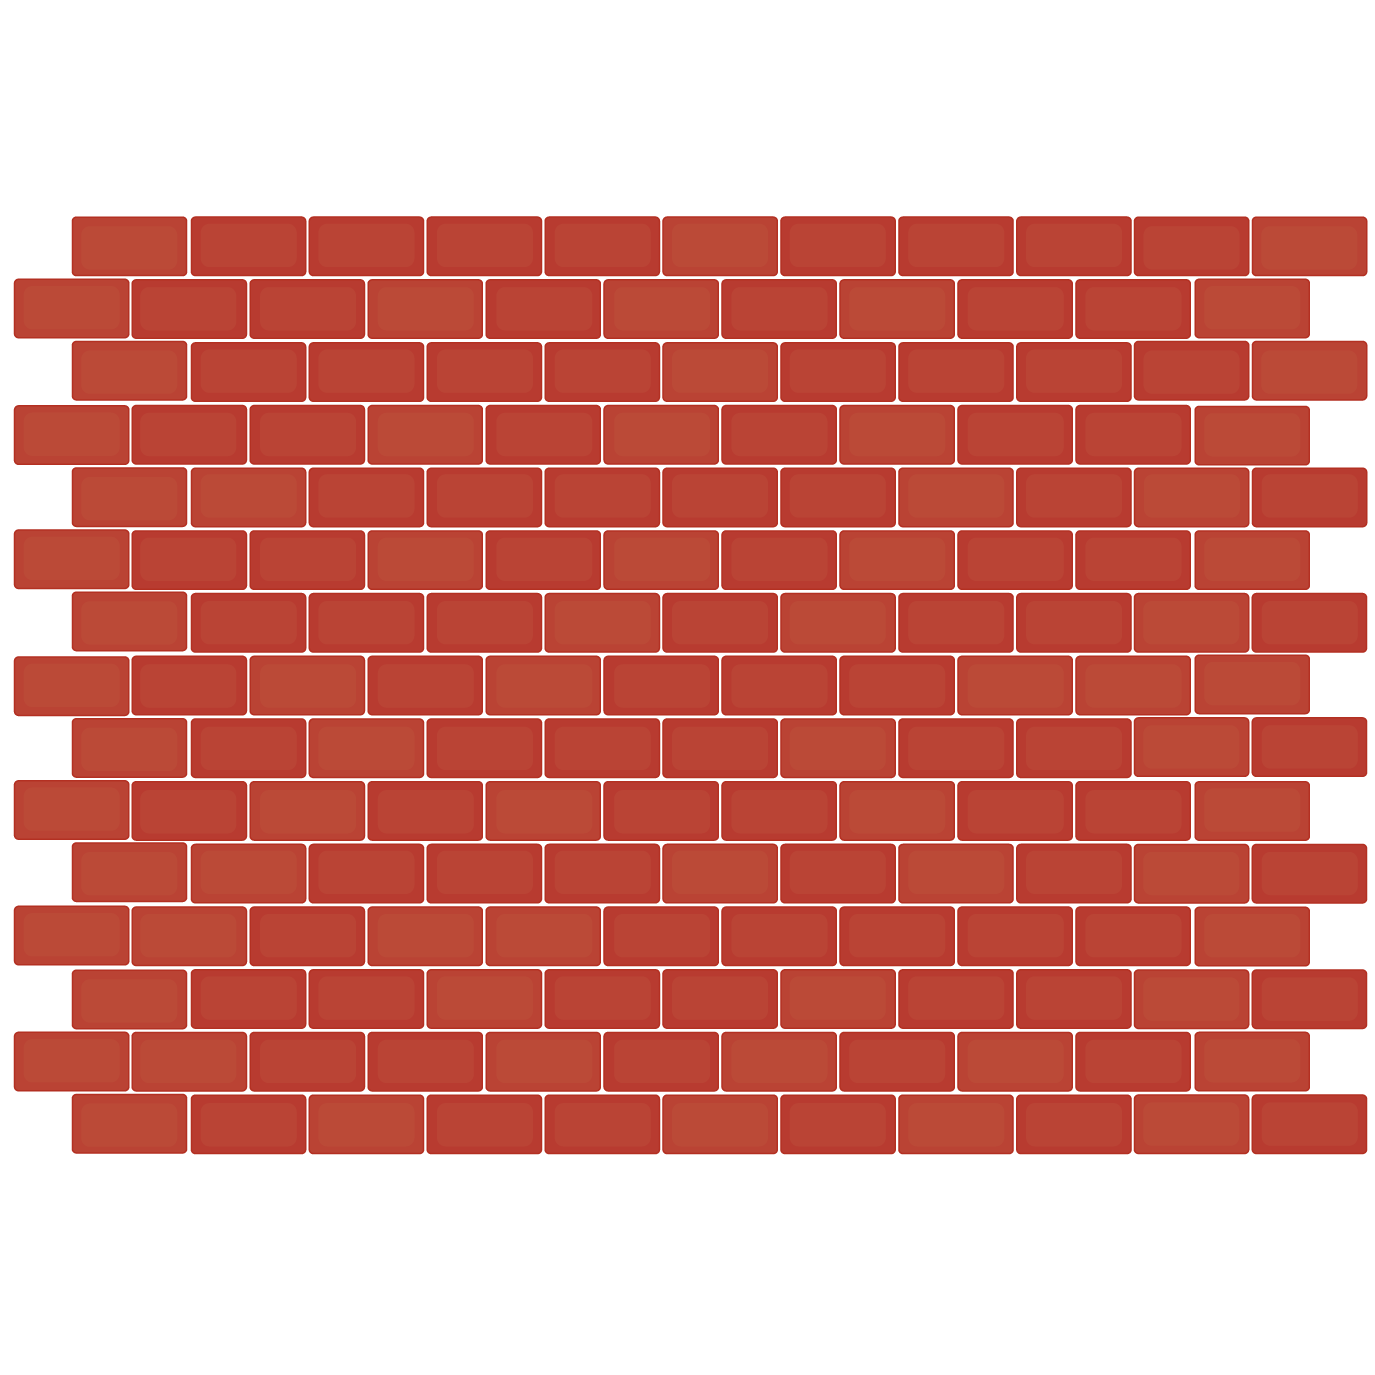 Red brick png. Wall mosaic tile floor